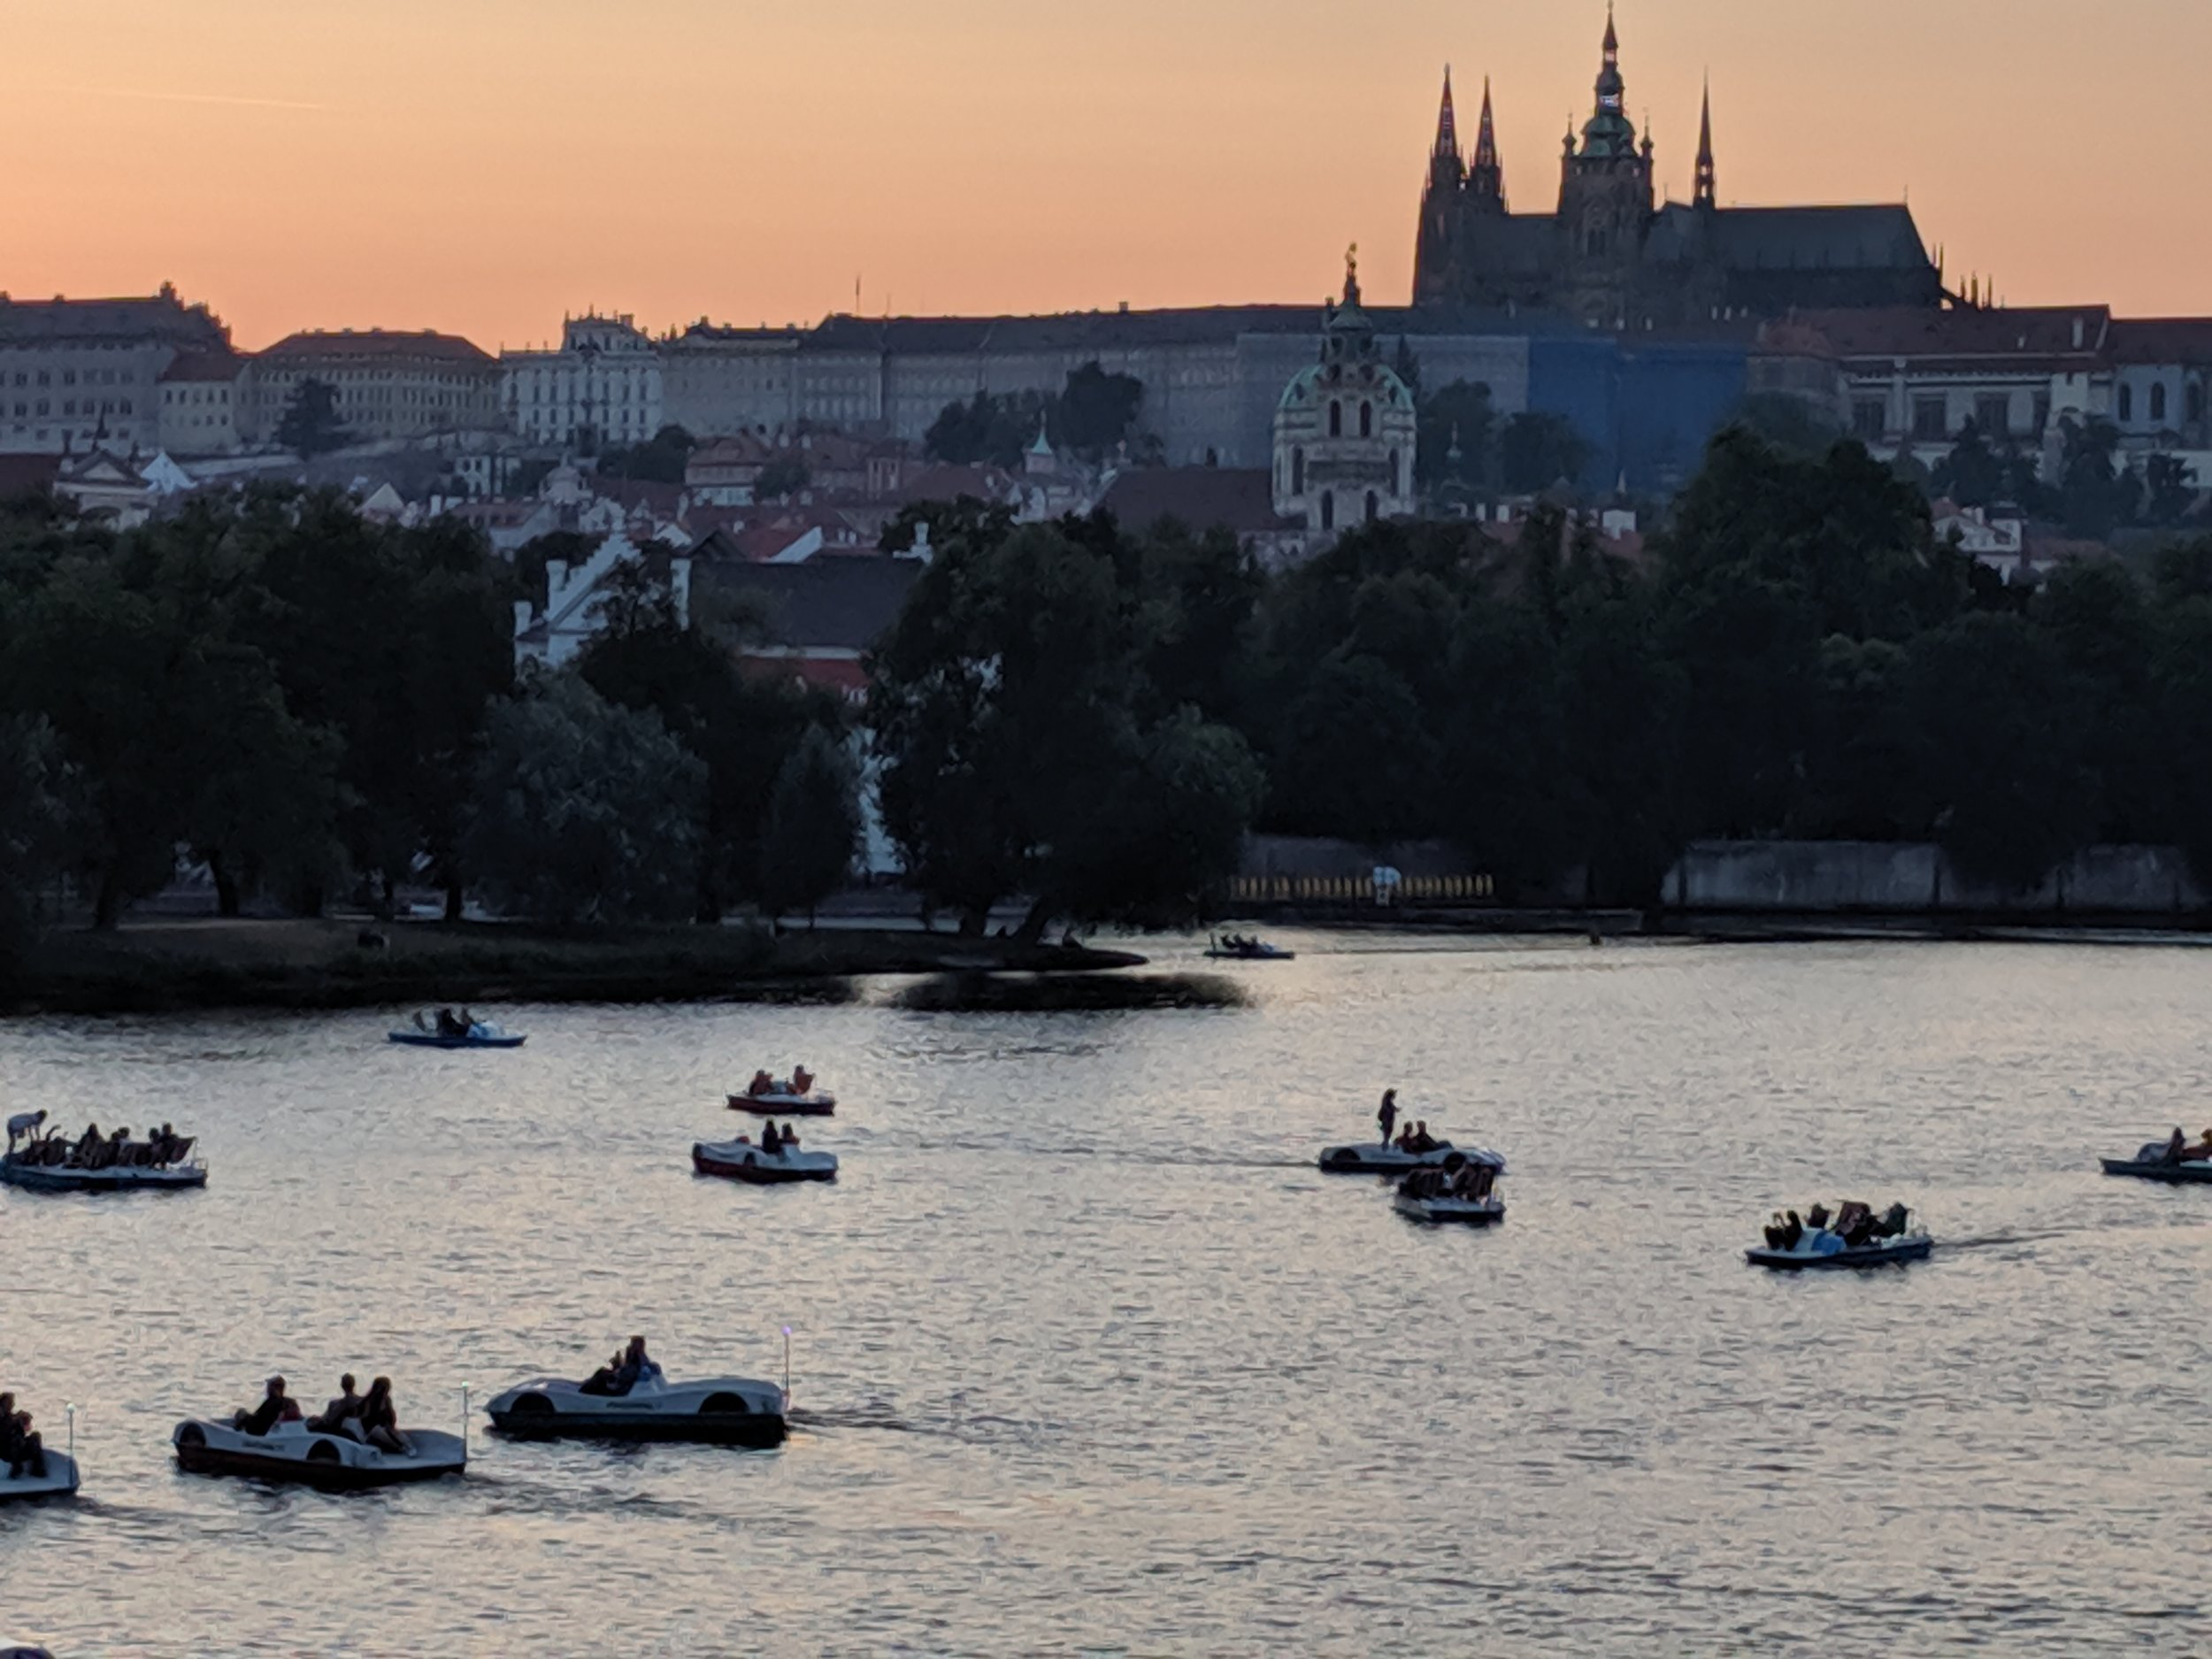 Paddle boats at dusk before Prague Castle and Cathedral.